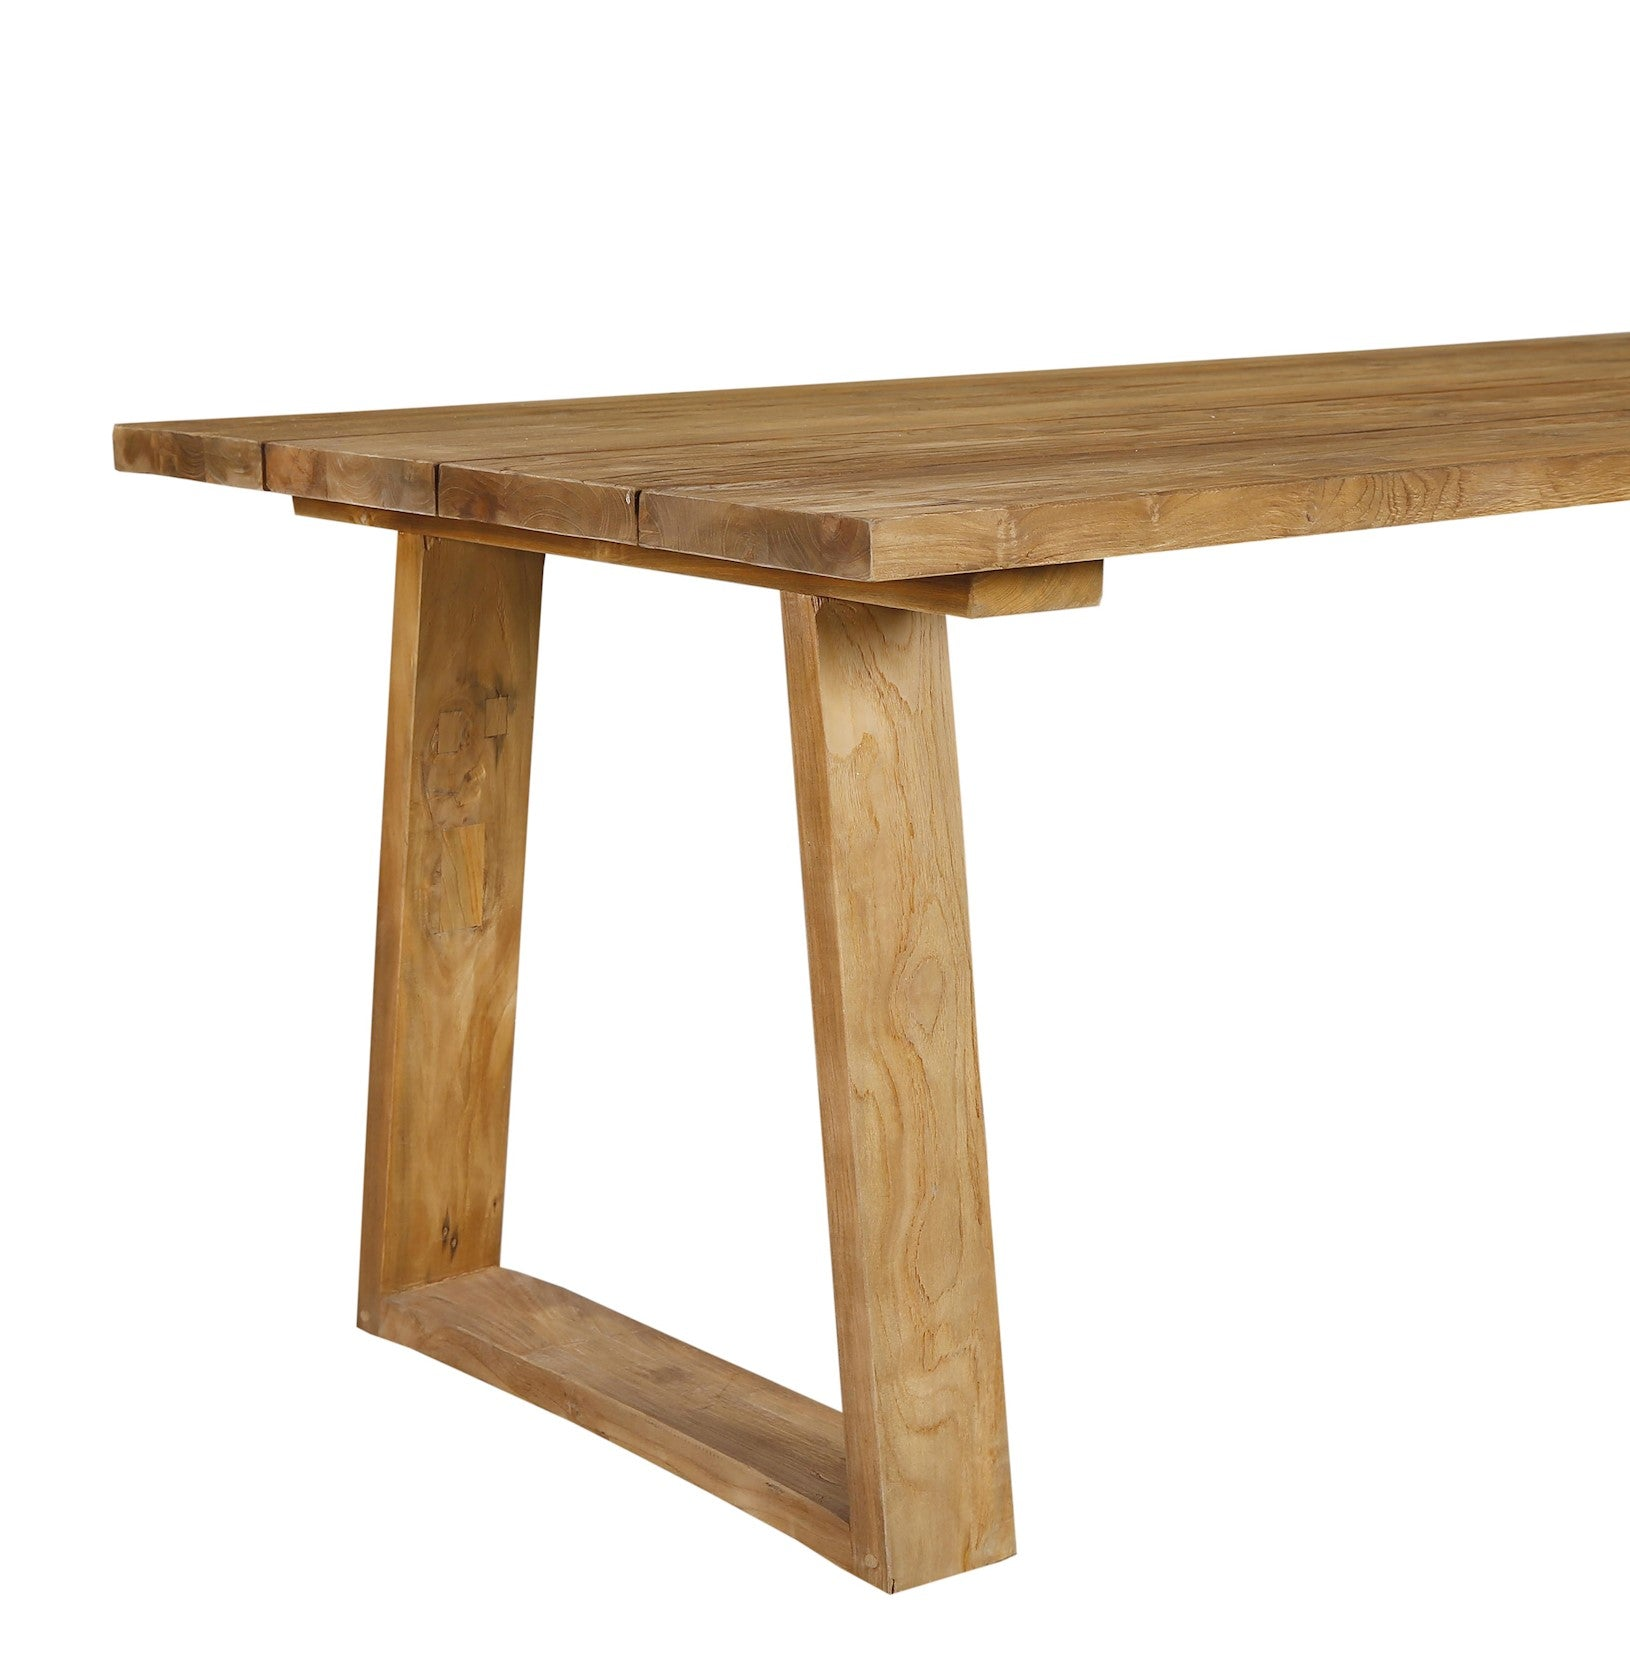 OUTDOOR DINING TABLE 'ALBA' - Dining Tables - SCAPA HOME - SCAPA HOME OFFICIAL